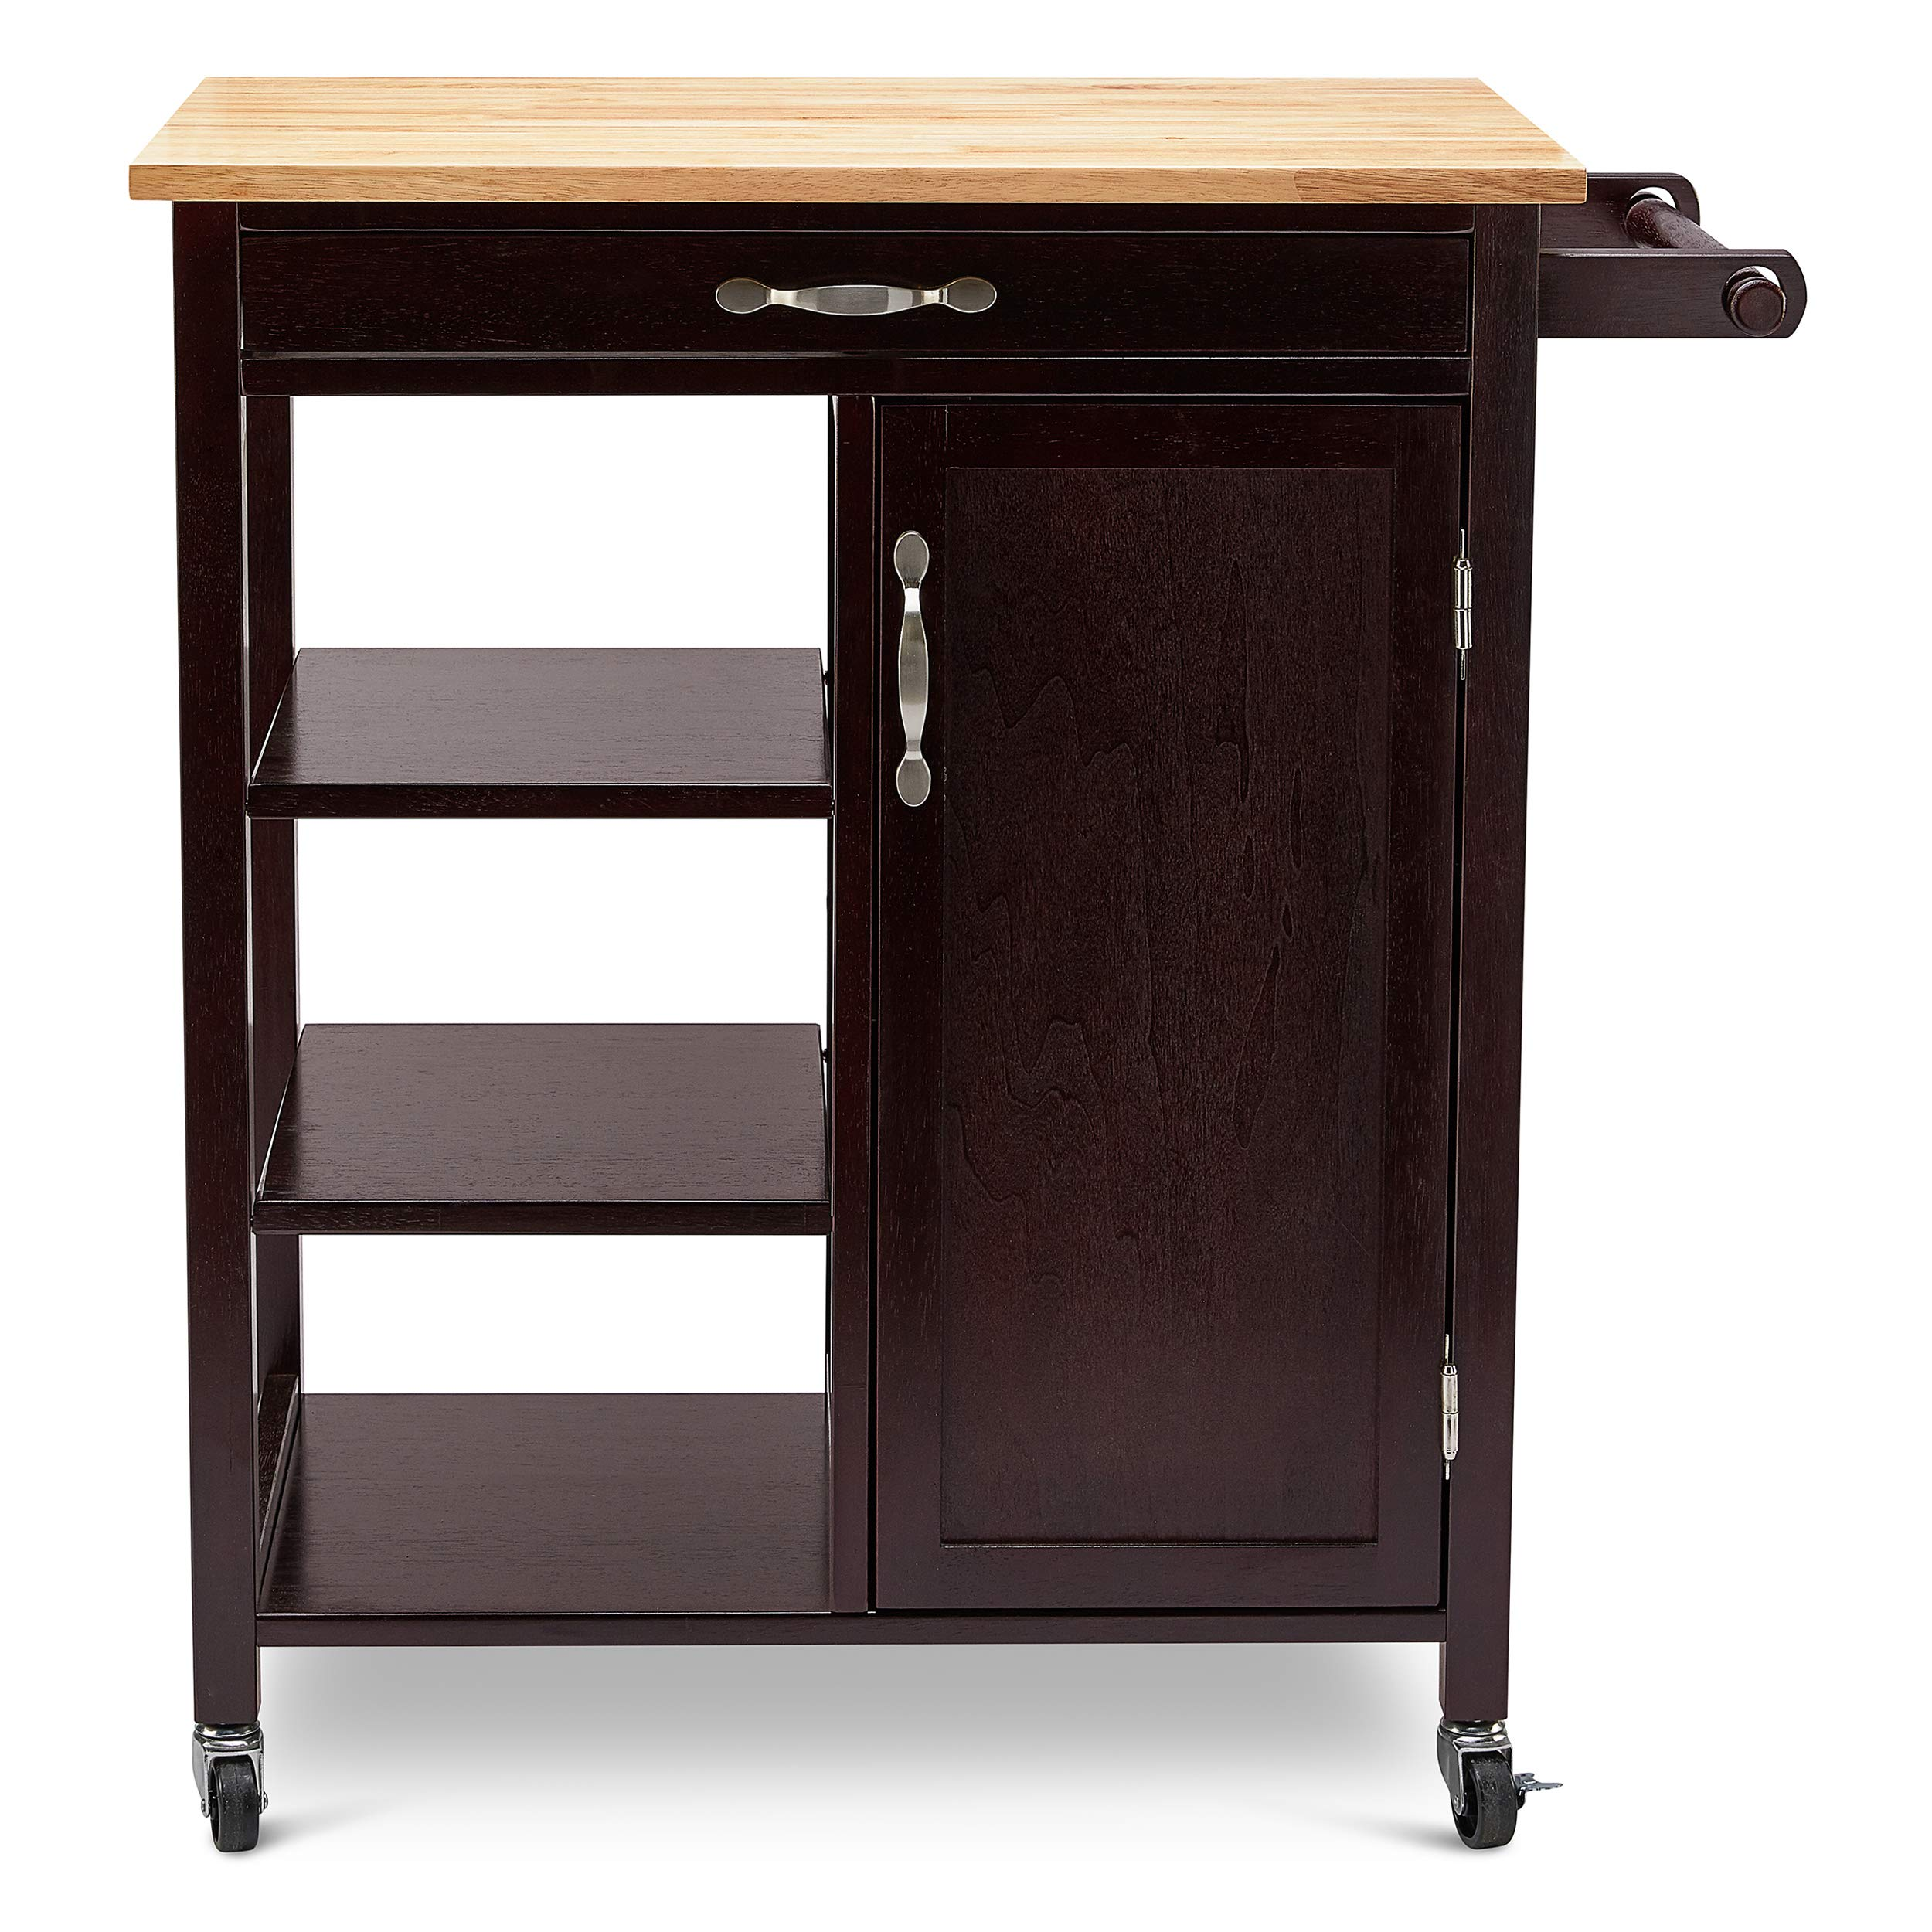 Civet Home 2-Toned Kitchen Cart, Espresso by Civet Home